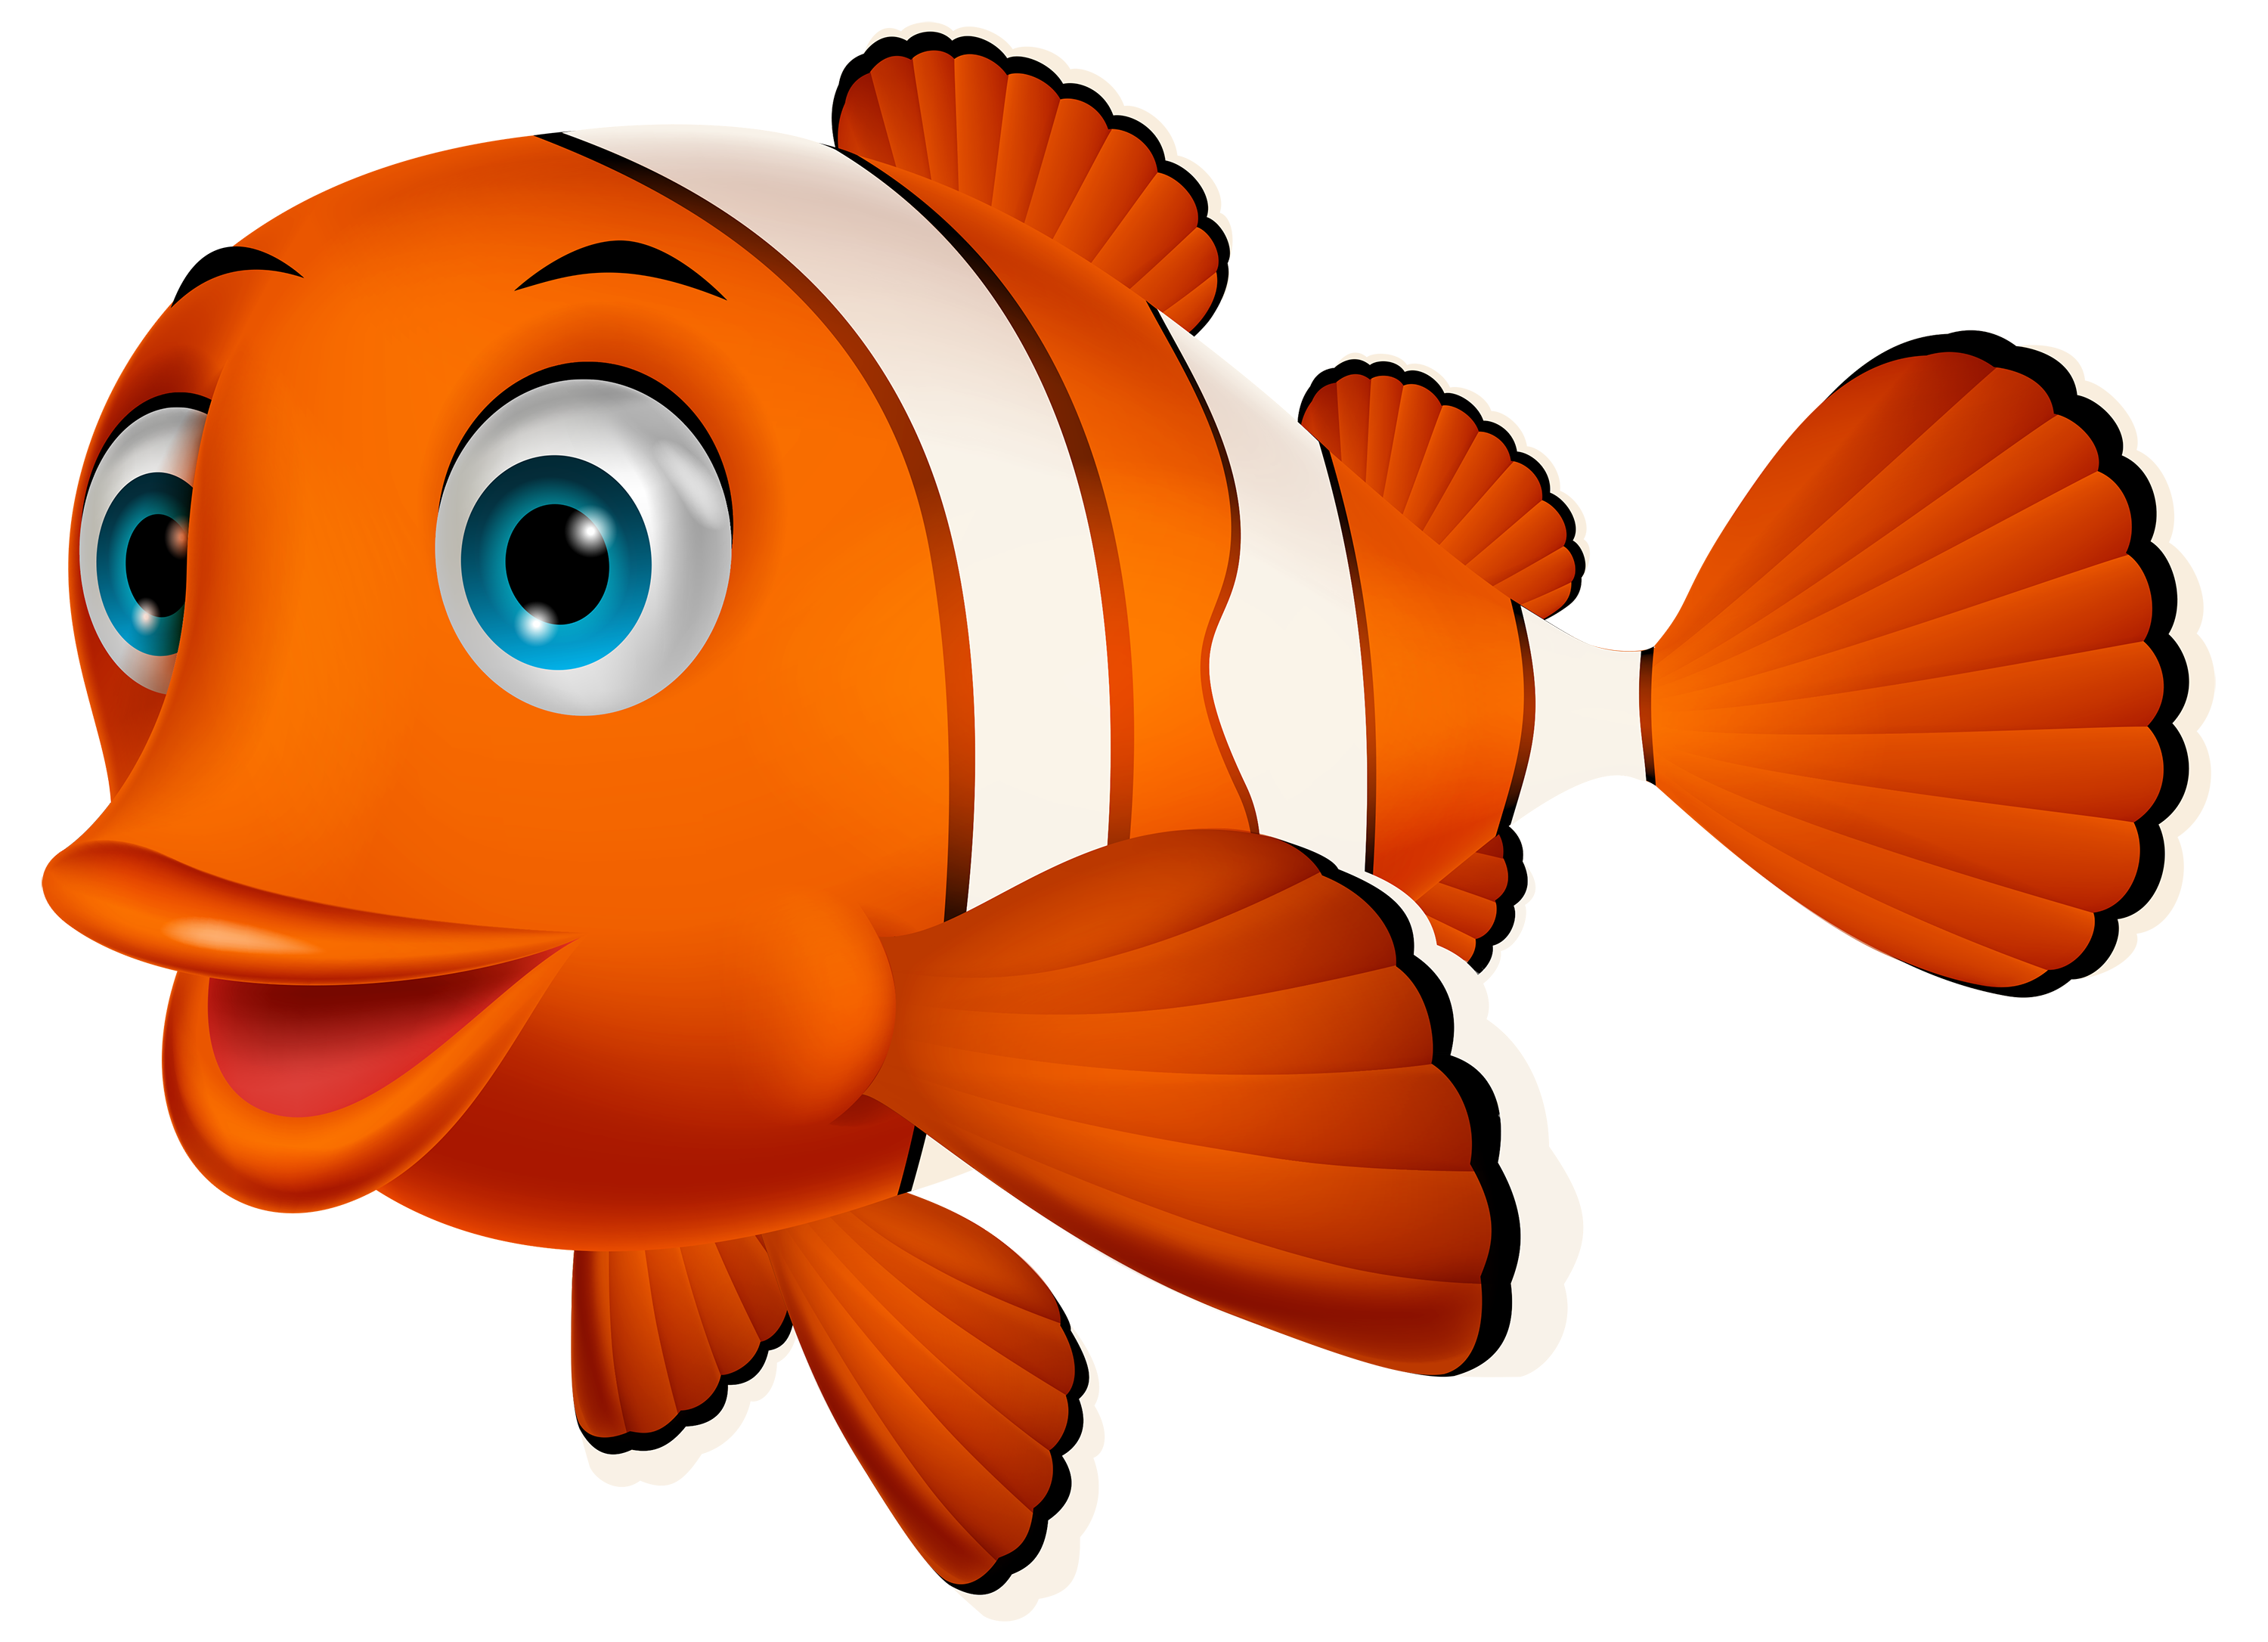 Red fish clipart image library stock Interesting Fish Images Free Clip Art Jumping Bass Clipart Panda #20358 image library stock